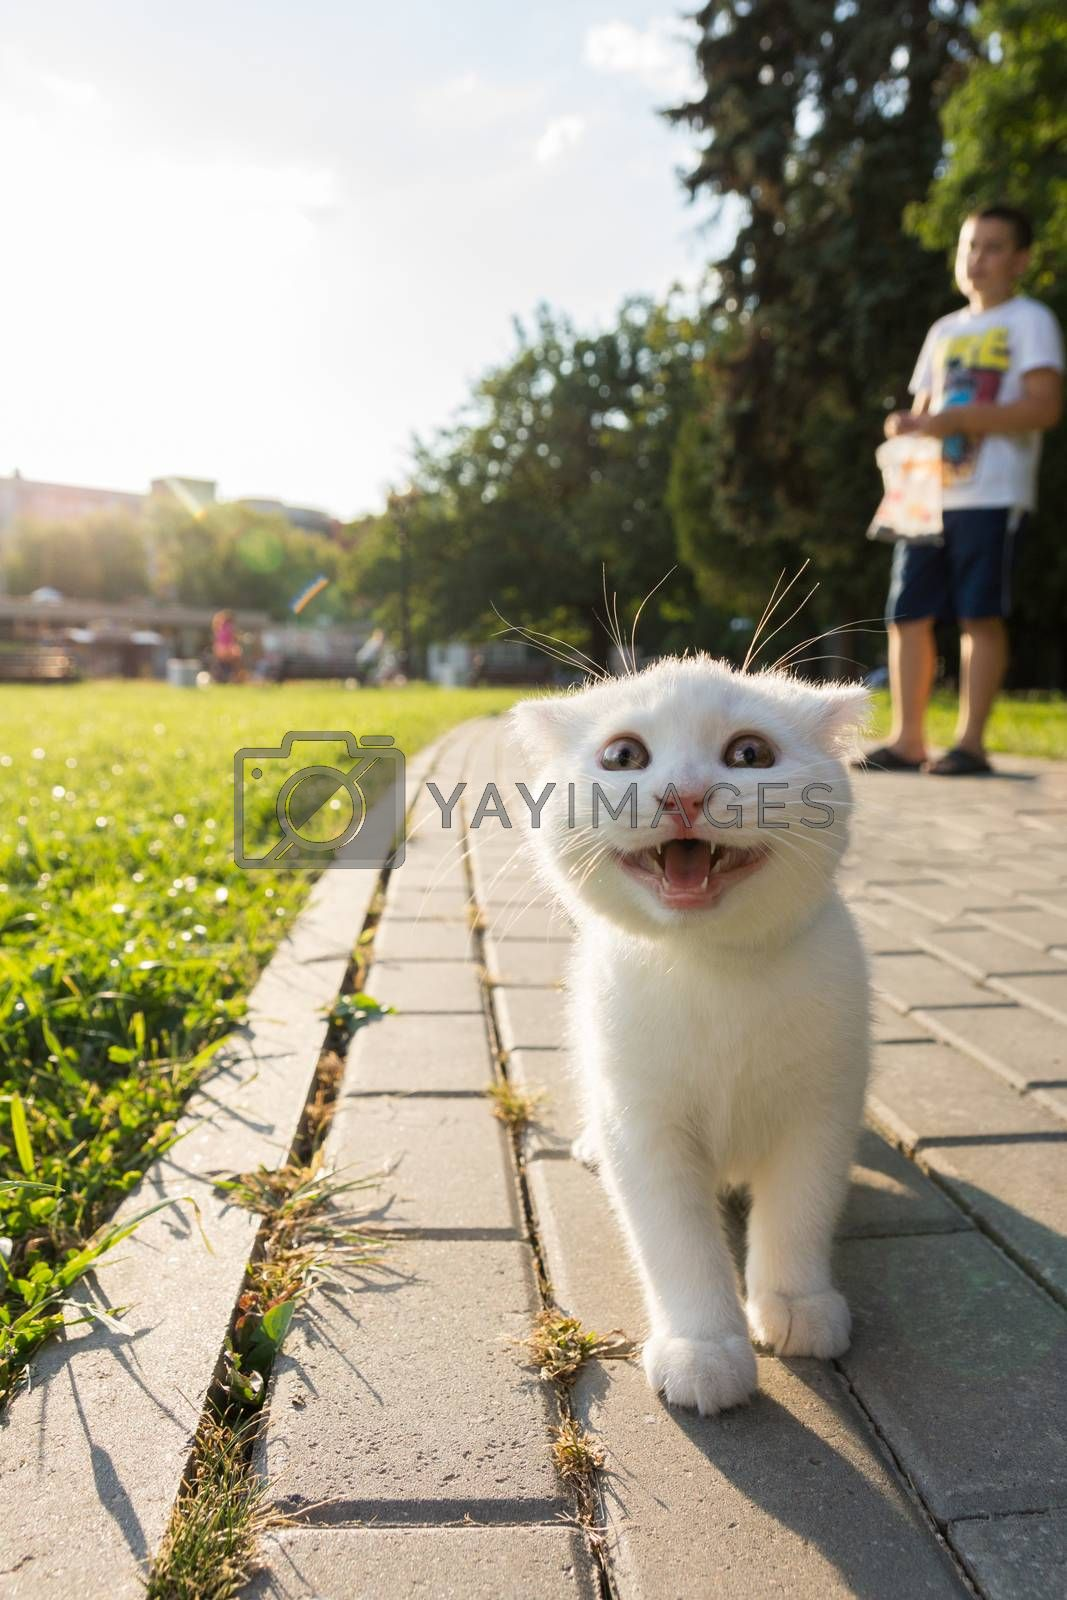 Kitten walks in the Izmailovo Park. He walks with a smile on the pavement.